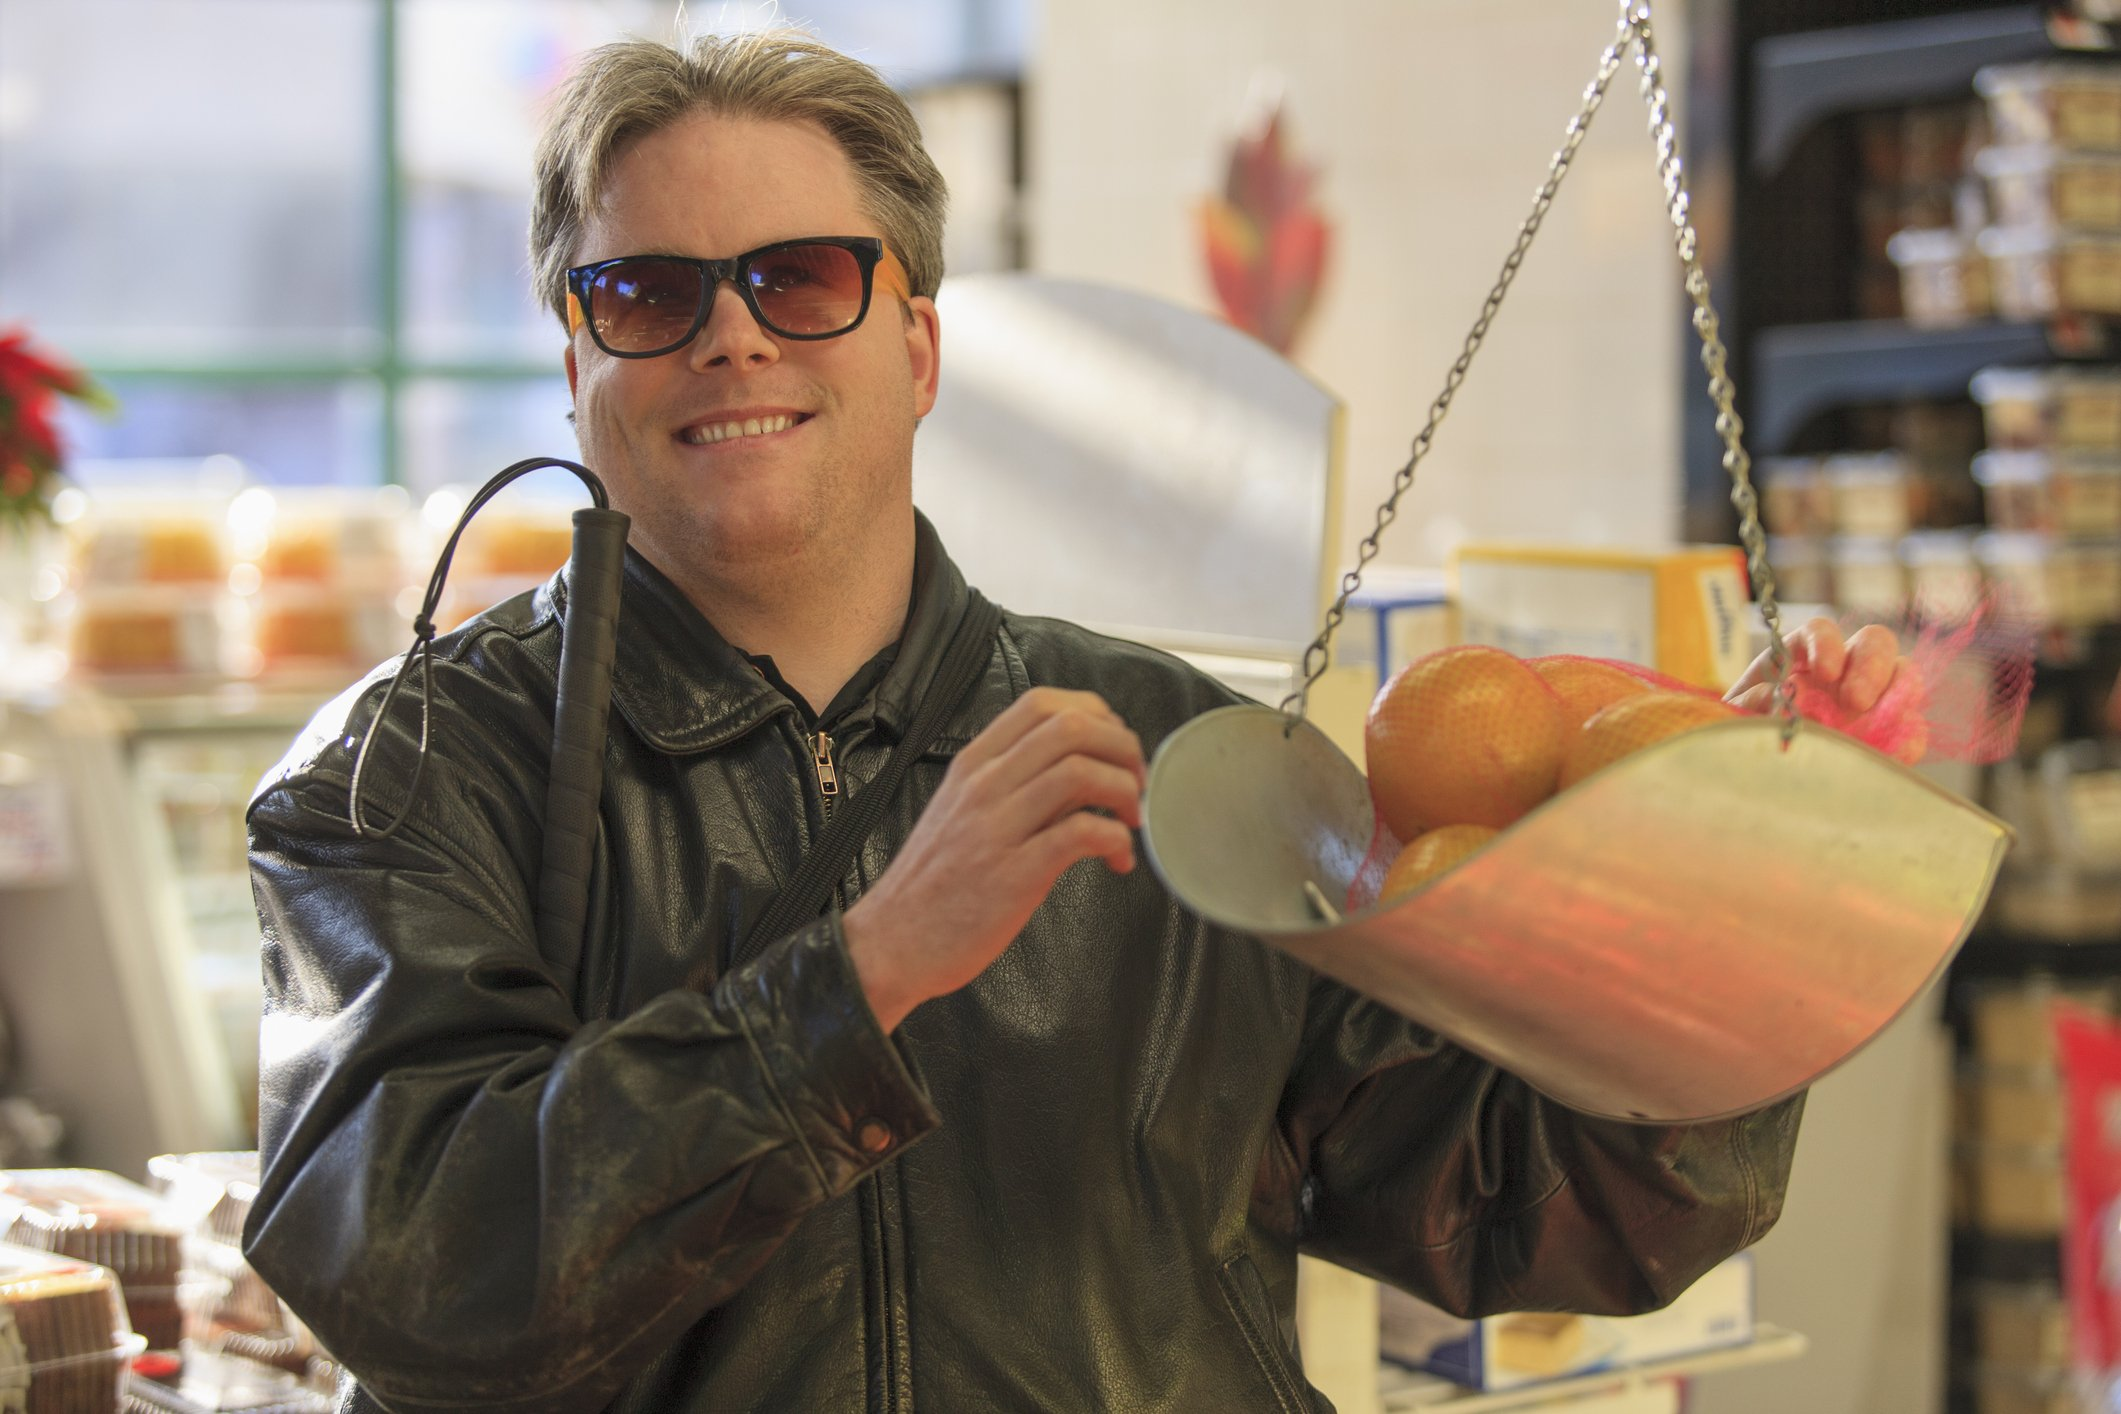 Man with congenital blindness weighing fruit at the grocery store   Photo: Getty Images